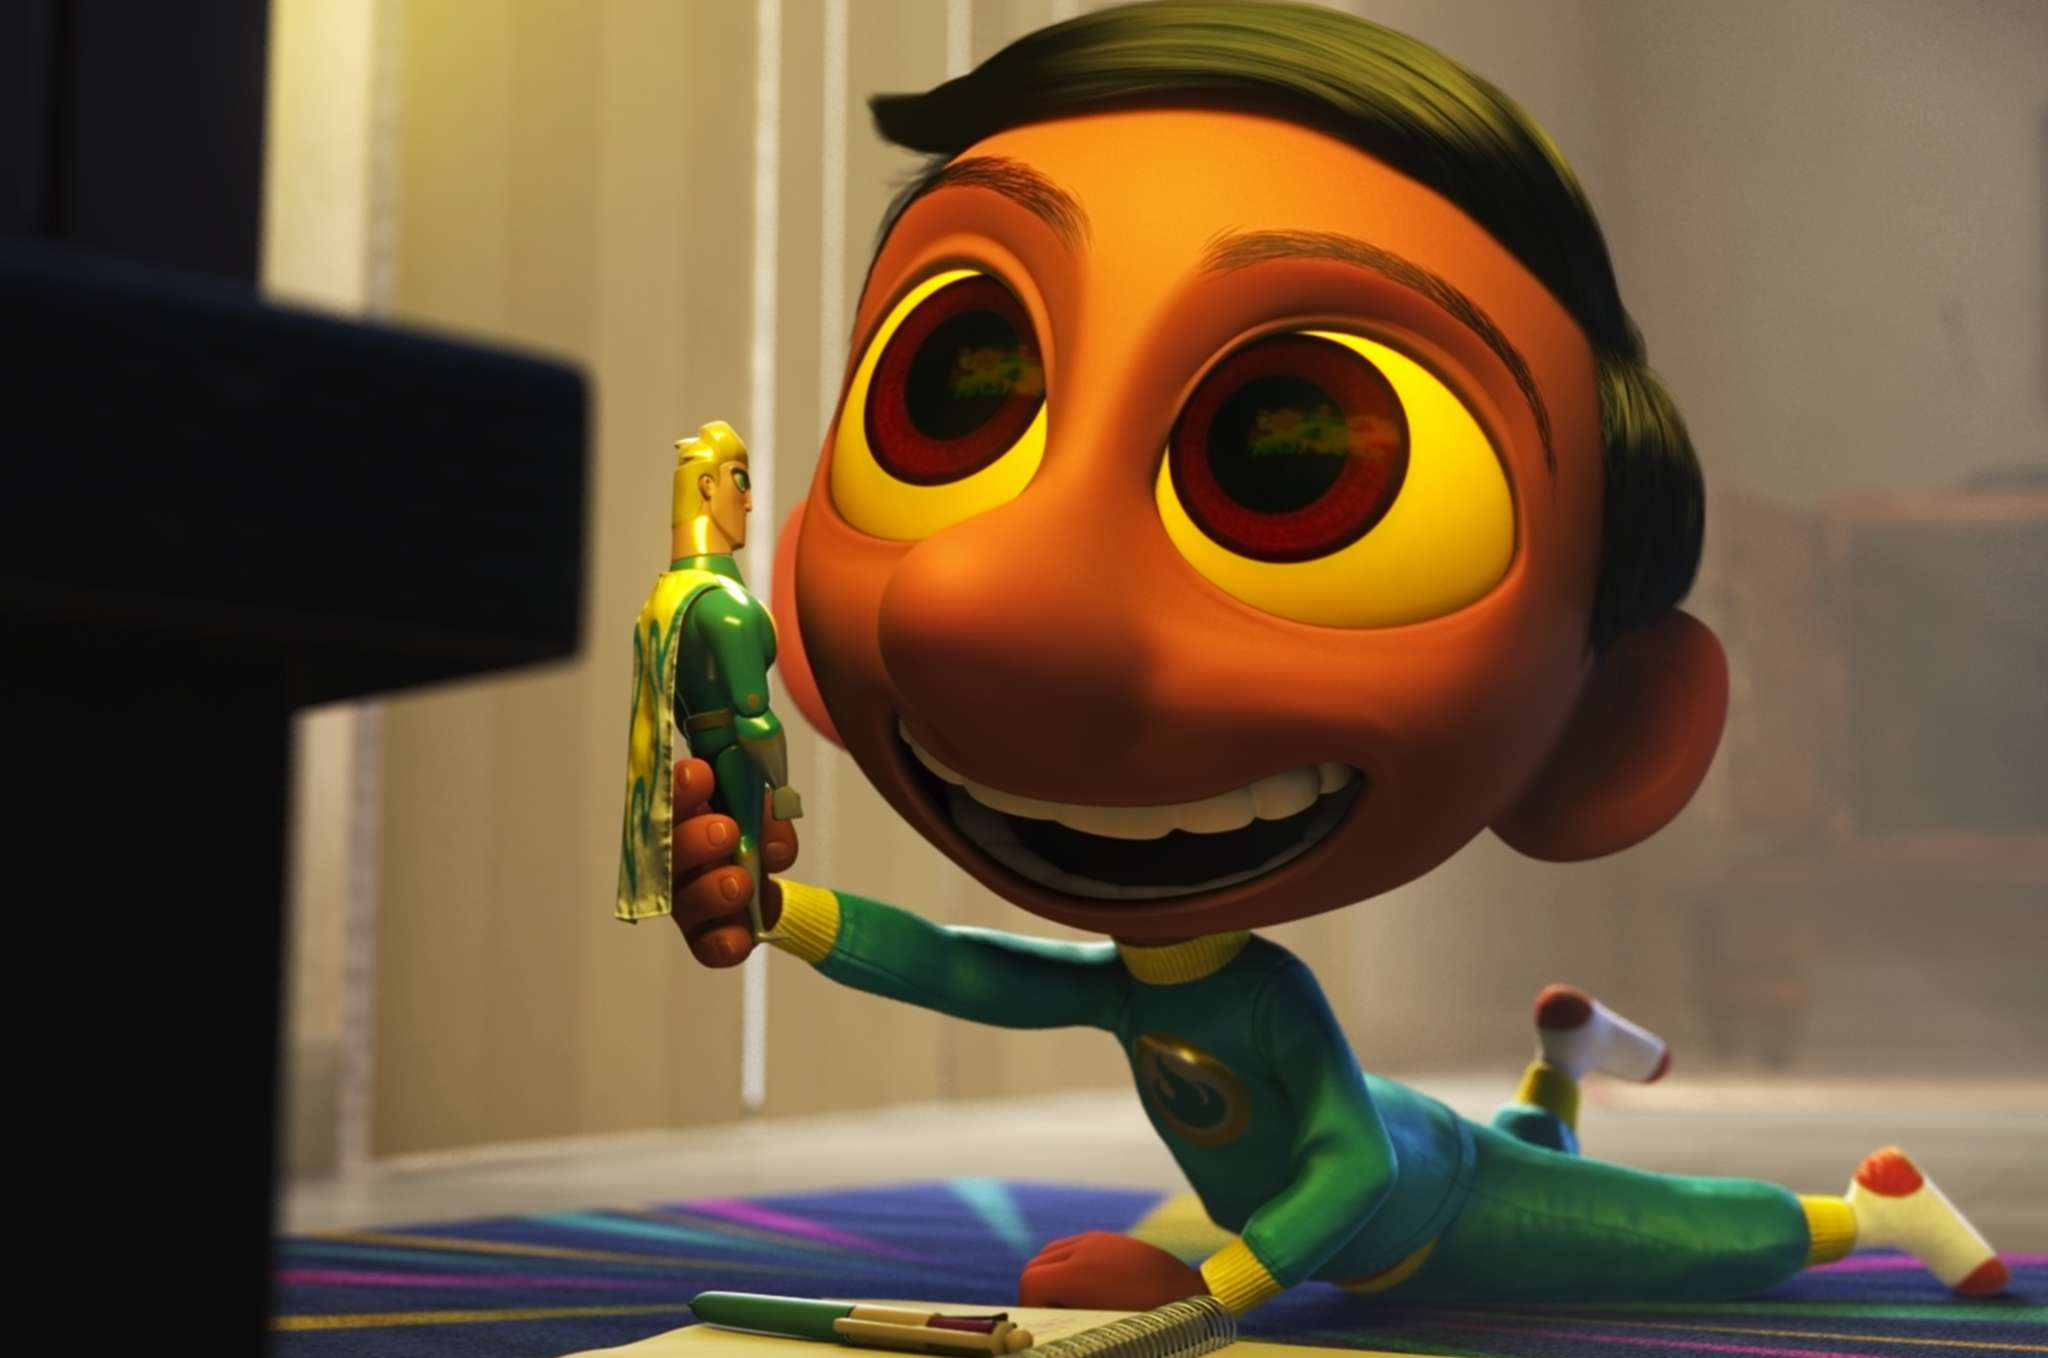 """Sanjay´s Super Team"" is among the Oscar-nominated animated short films screening together in theaters."